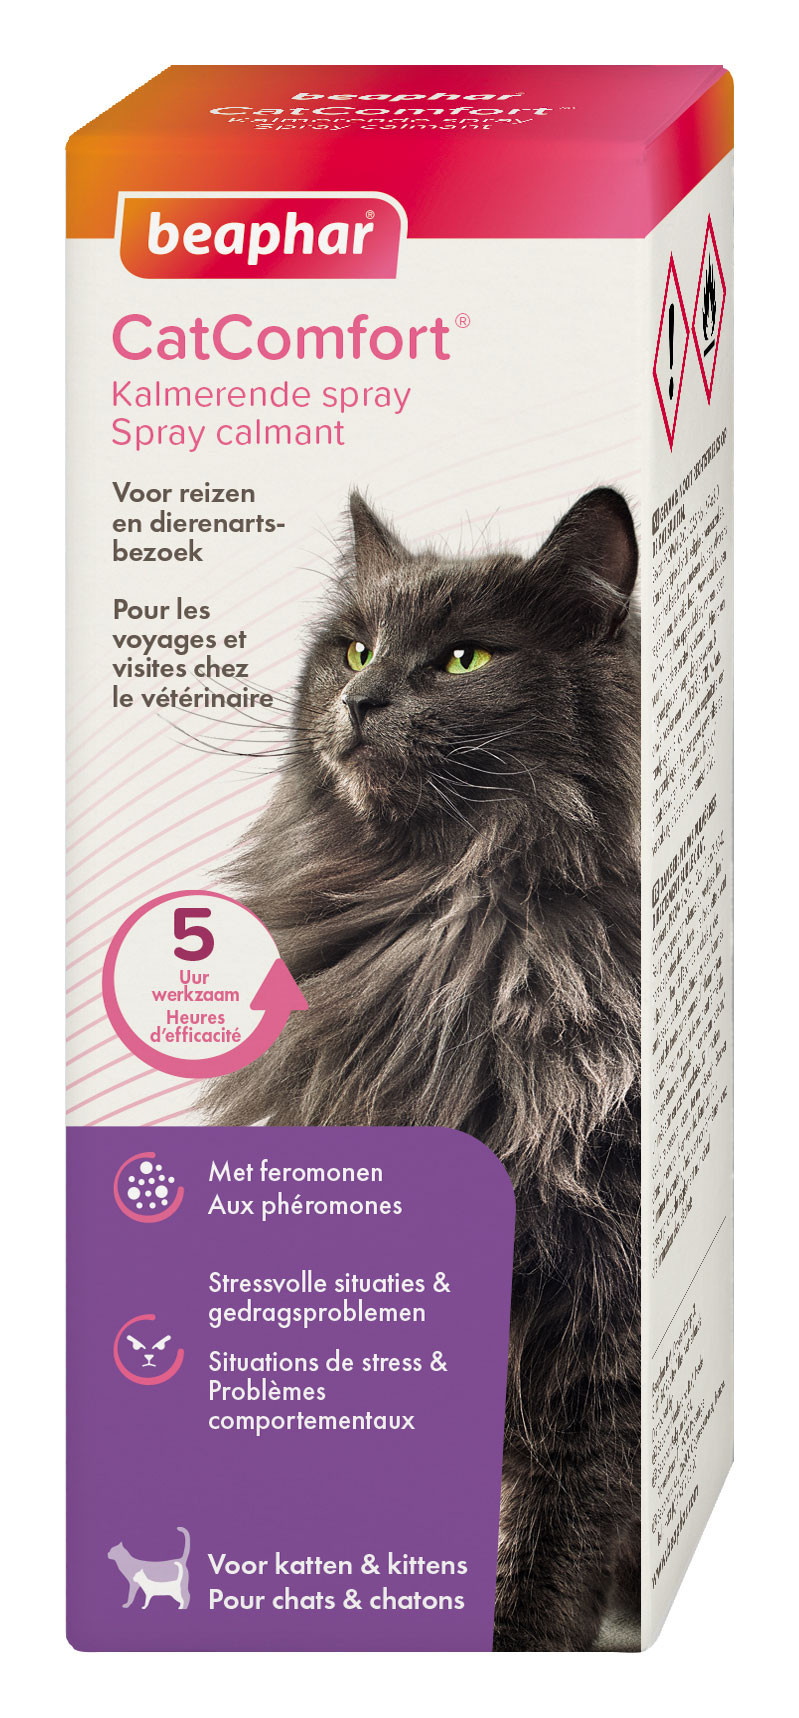 Beaphar CatComfort kalmerende spray 60 ml